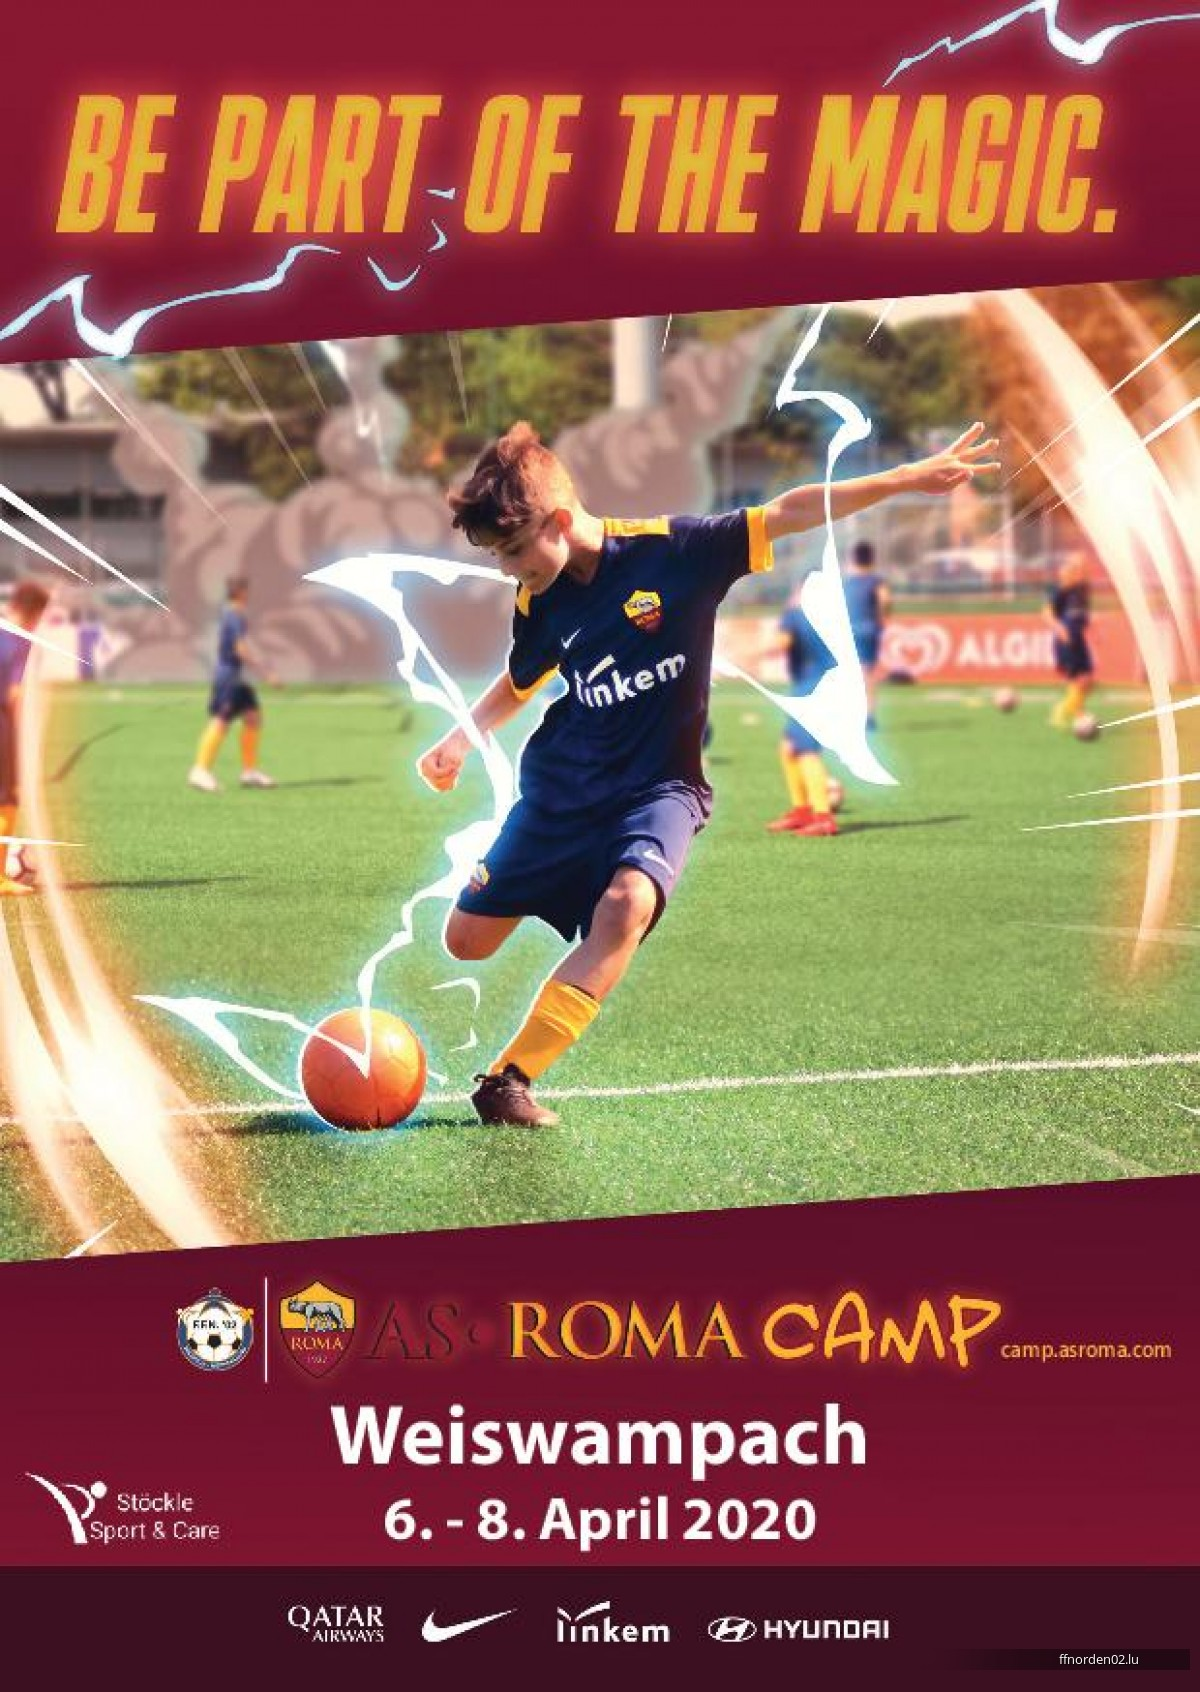 AS Roma Camp 2020 zu Wäiswampich